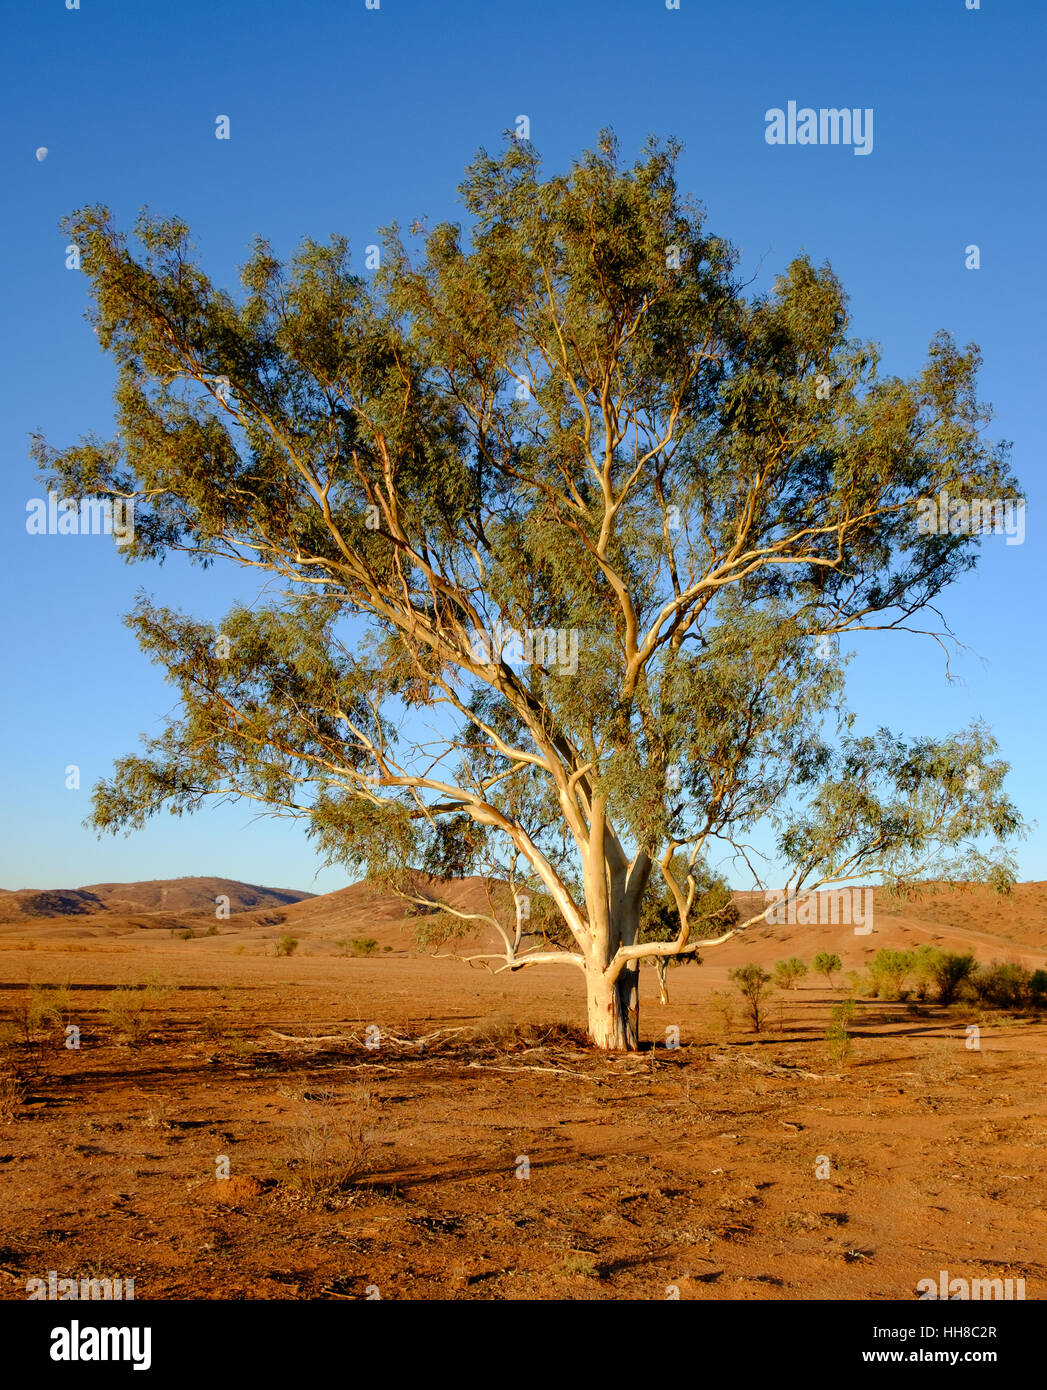 Large river red gum tree (Eucalyptus camaldulensis) in late afternoon light against a desert background in outback - Stock Image